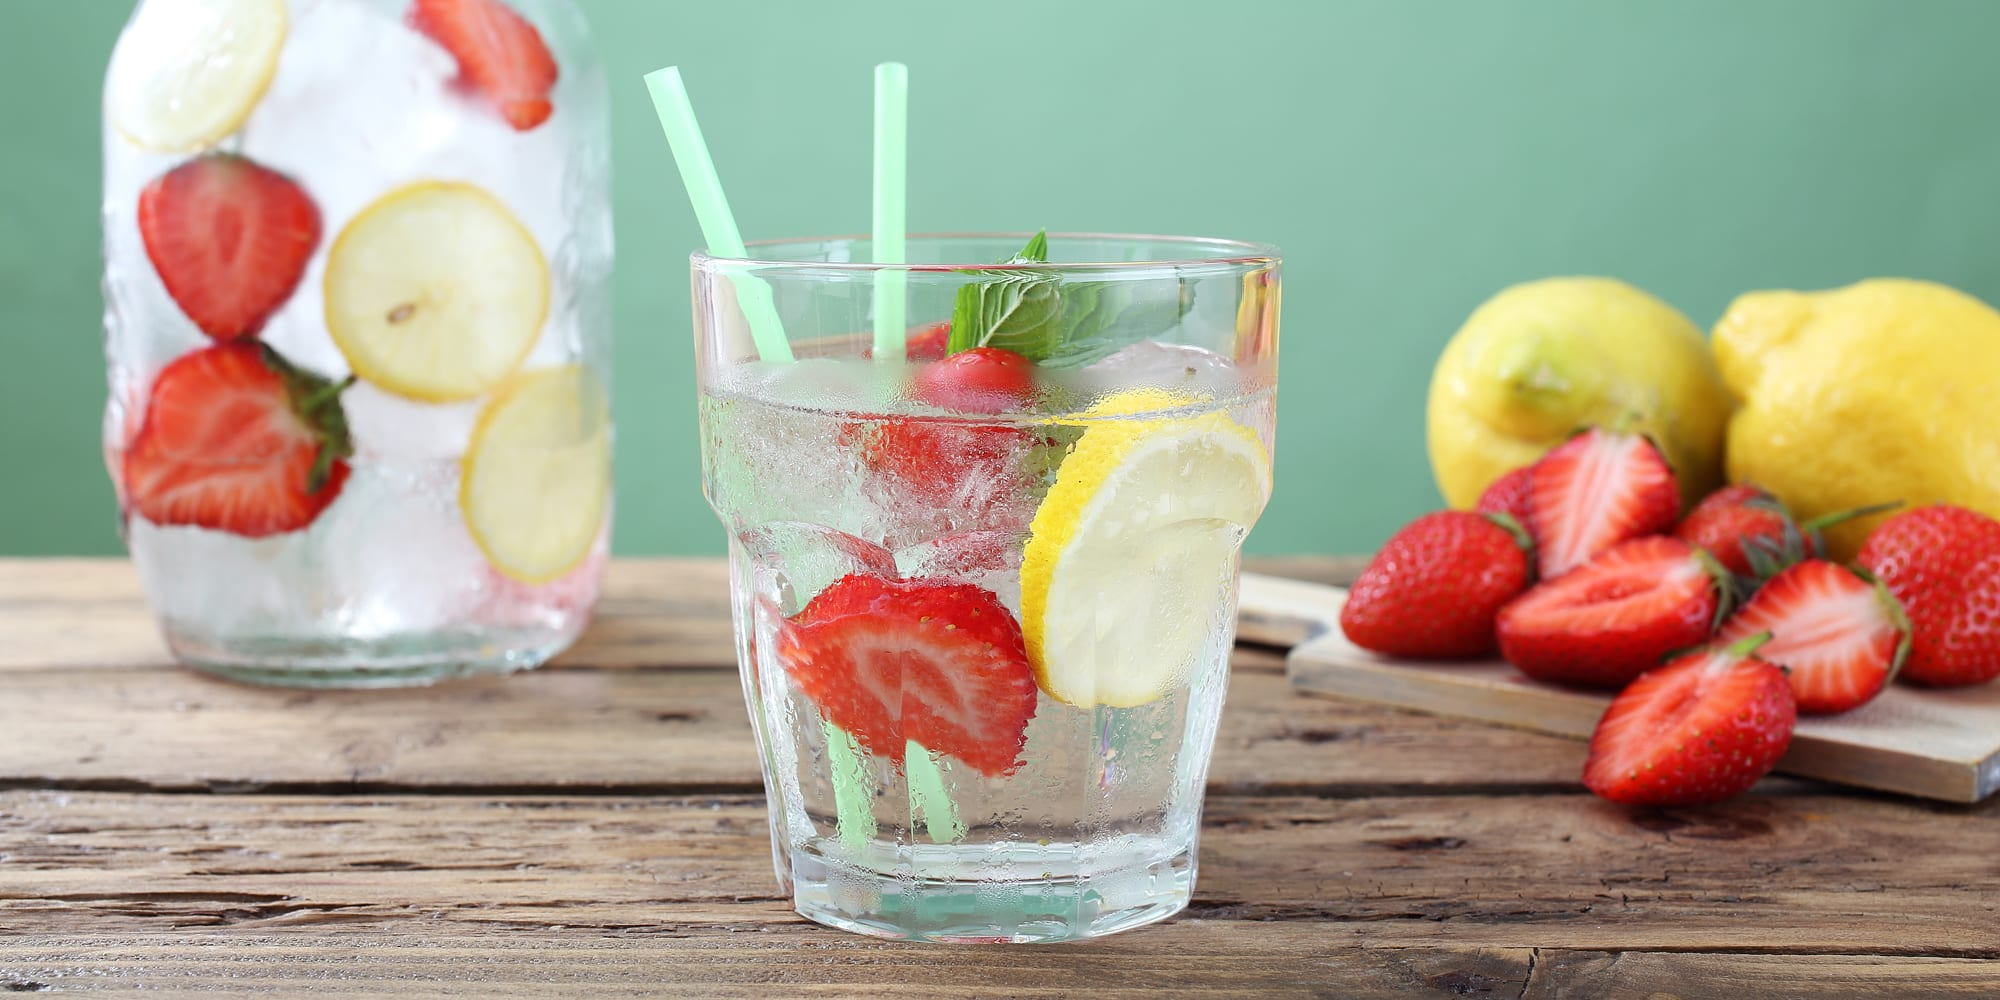 Detox Water For Weight Loss: Does It Actually Work?